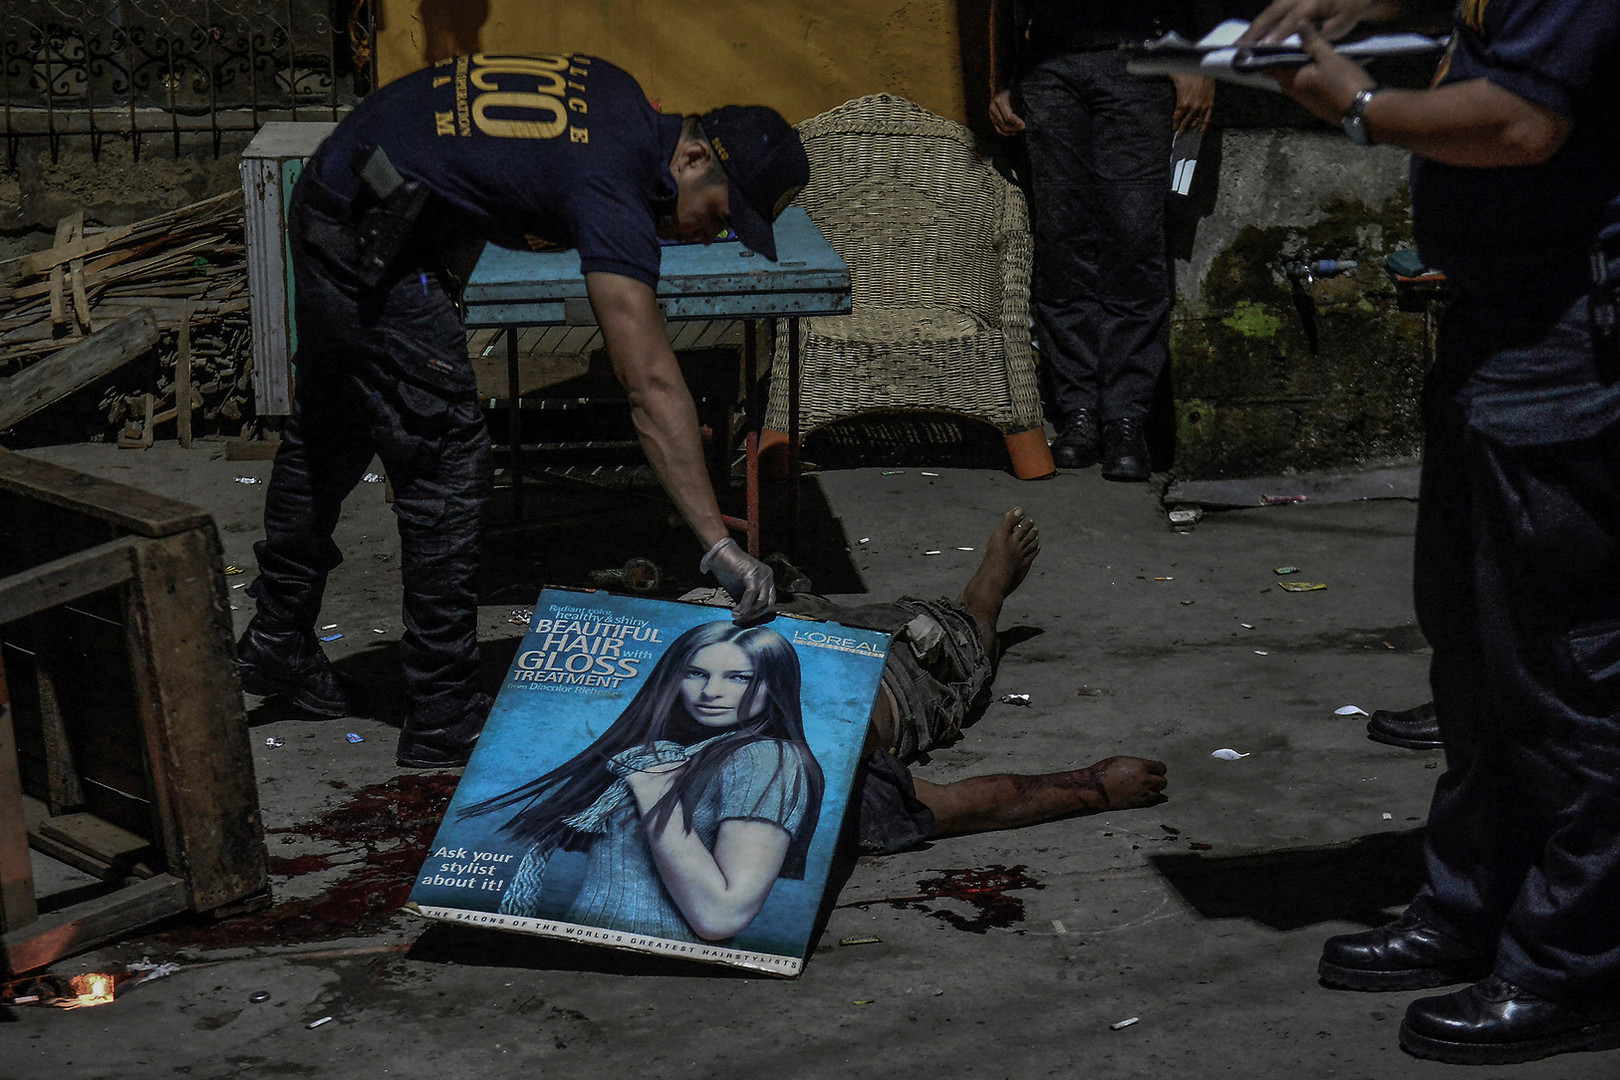 A police investigator covers a shooting victim with a cardboard poster in Quezon city, Metro Manila, Philippines, February 9, 2017.